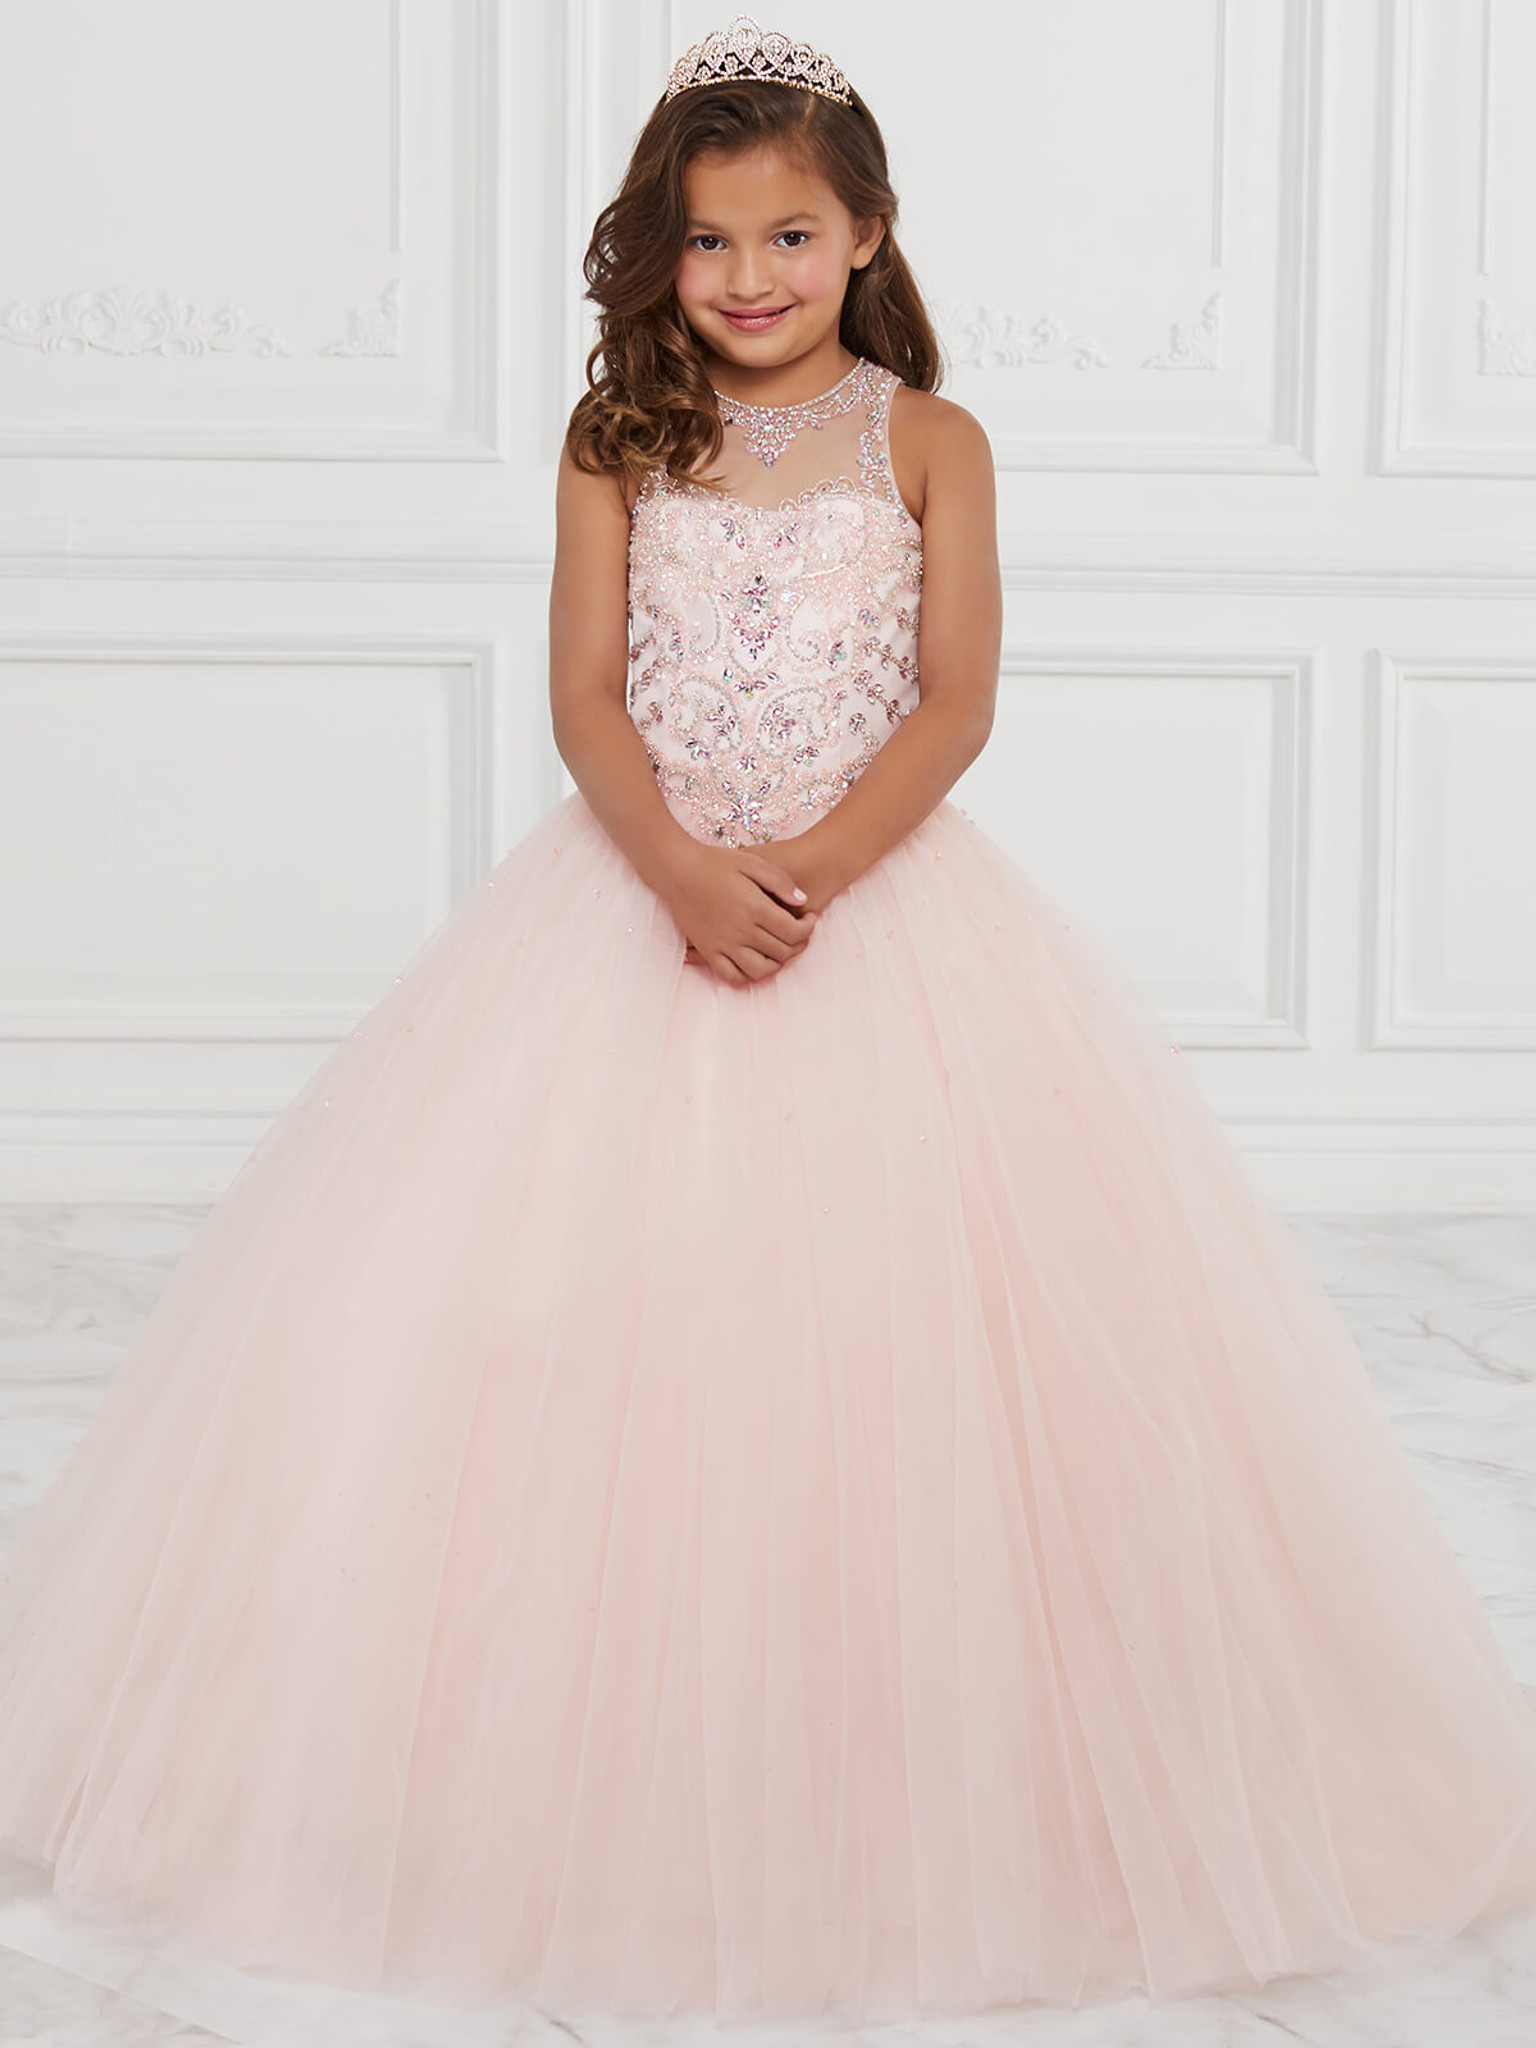 Tulle Tiffany Princess 13593 Pageant Dress PageantDesigns